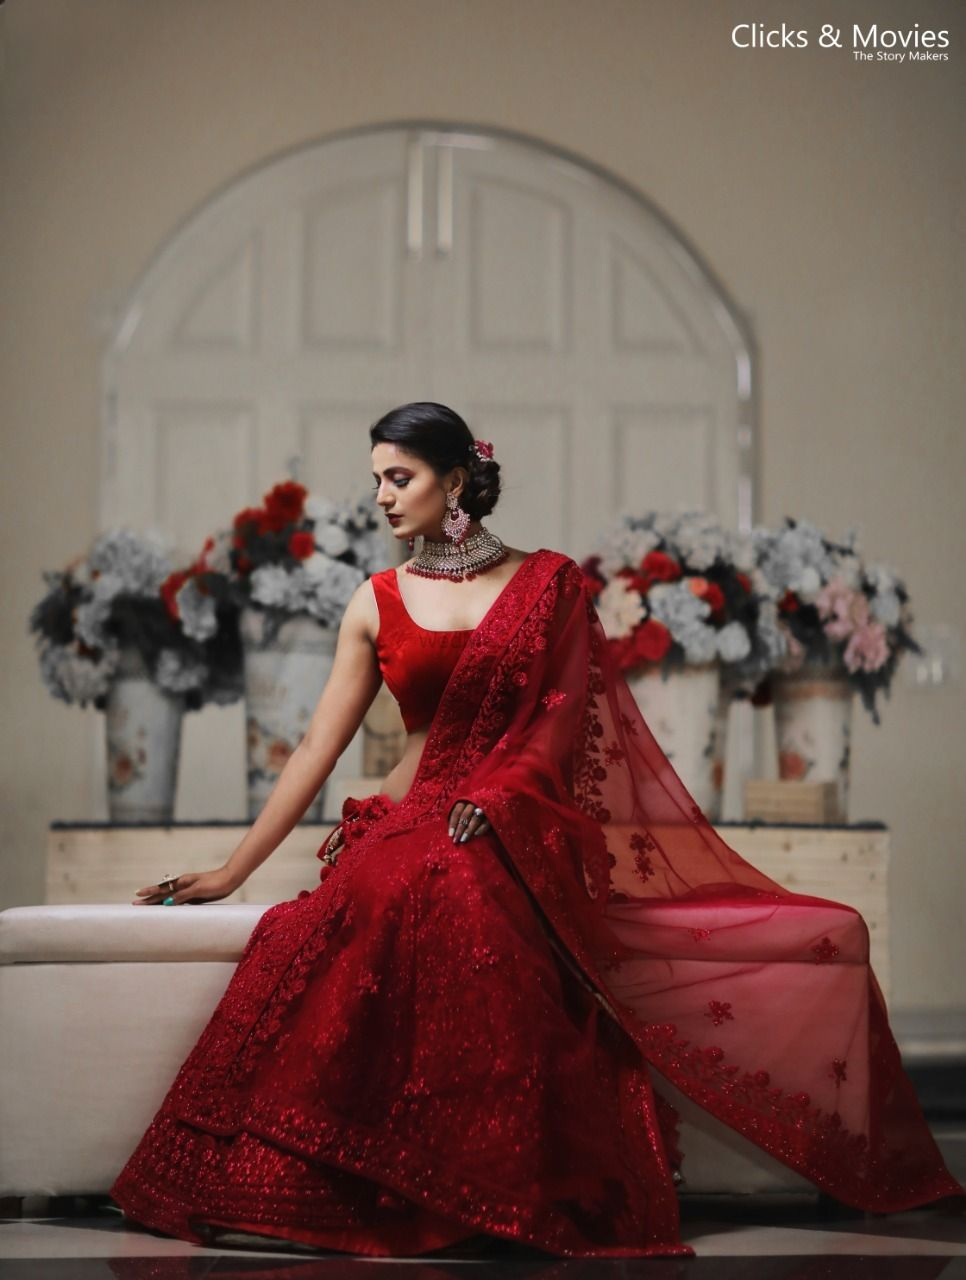 Photo of Bridal portrait in a red lehenga